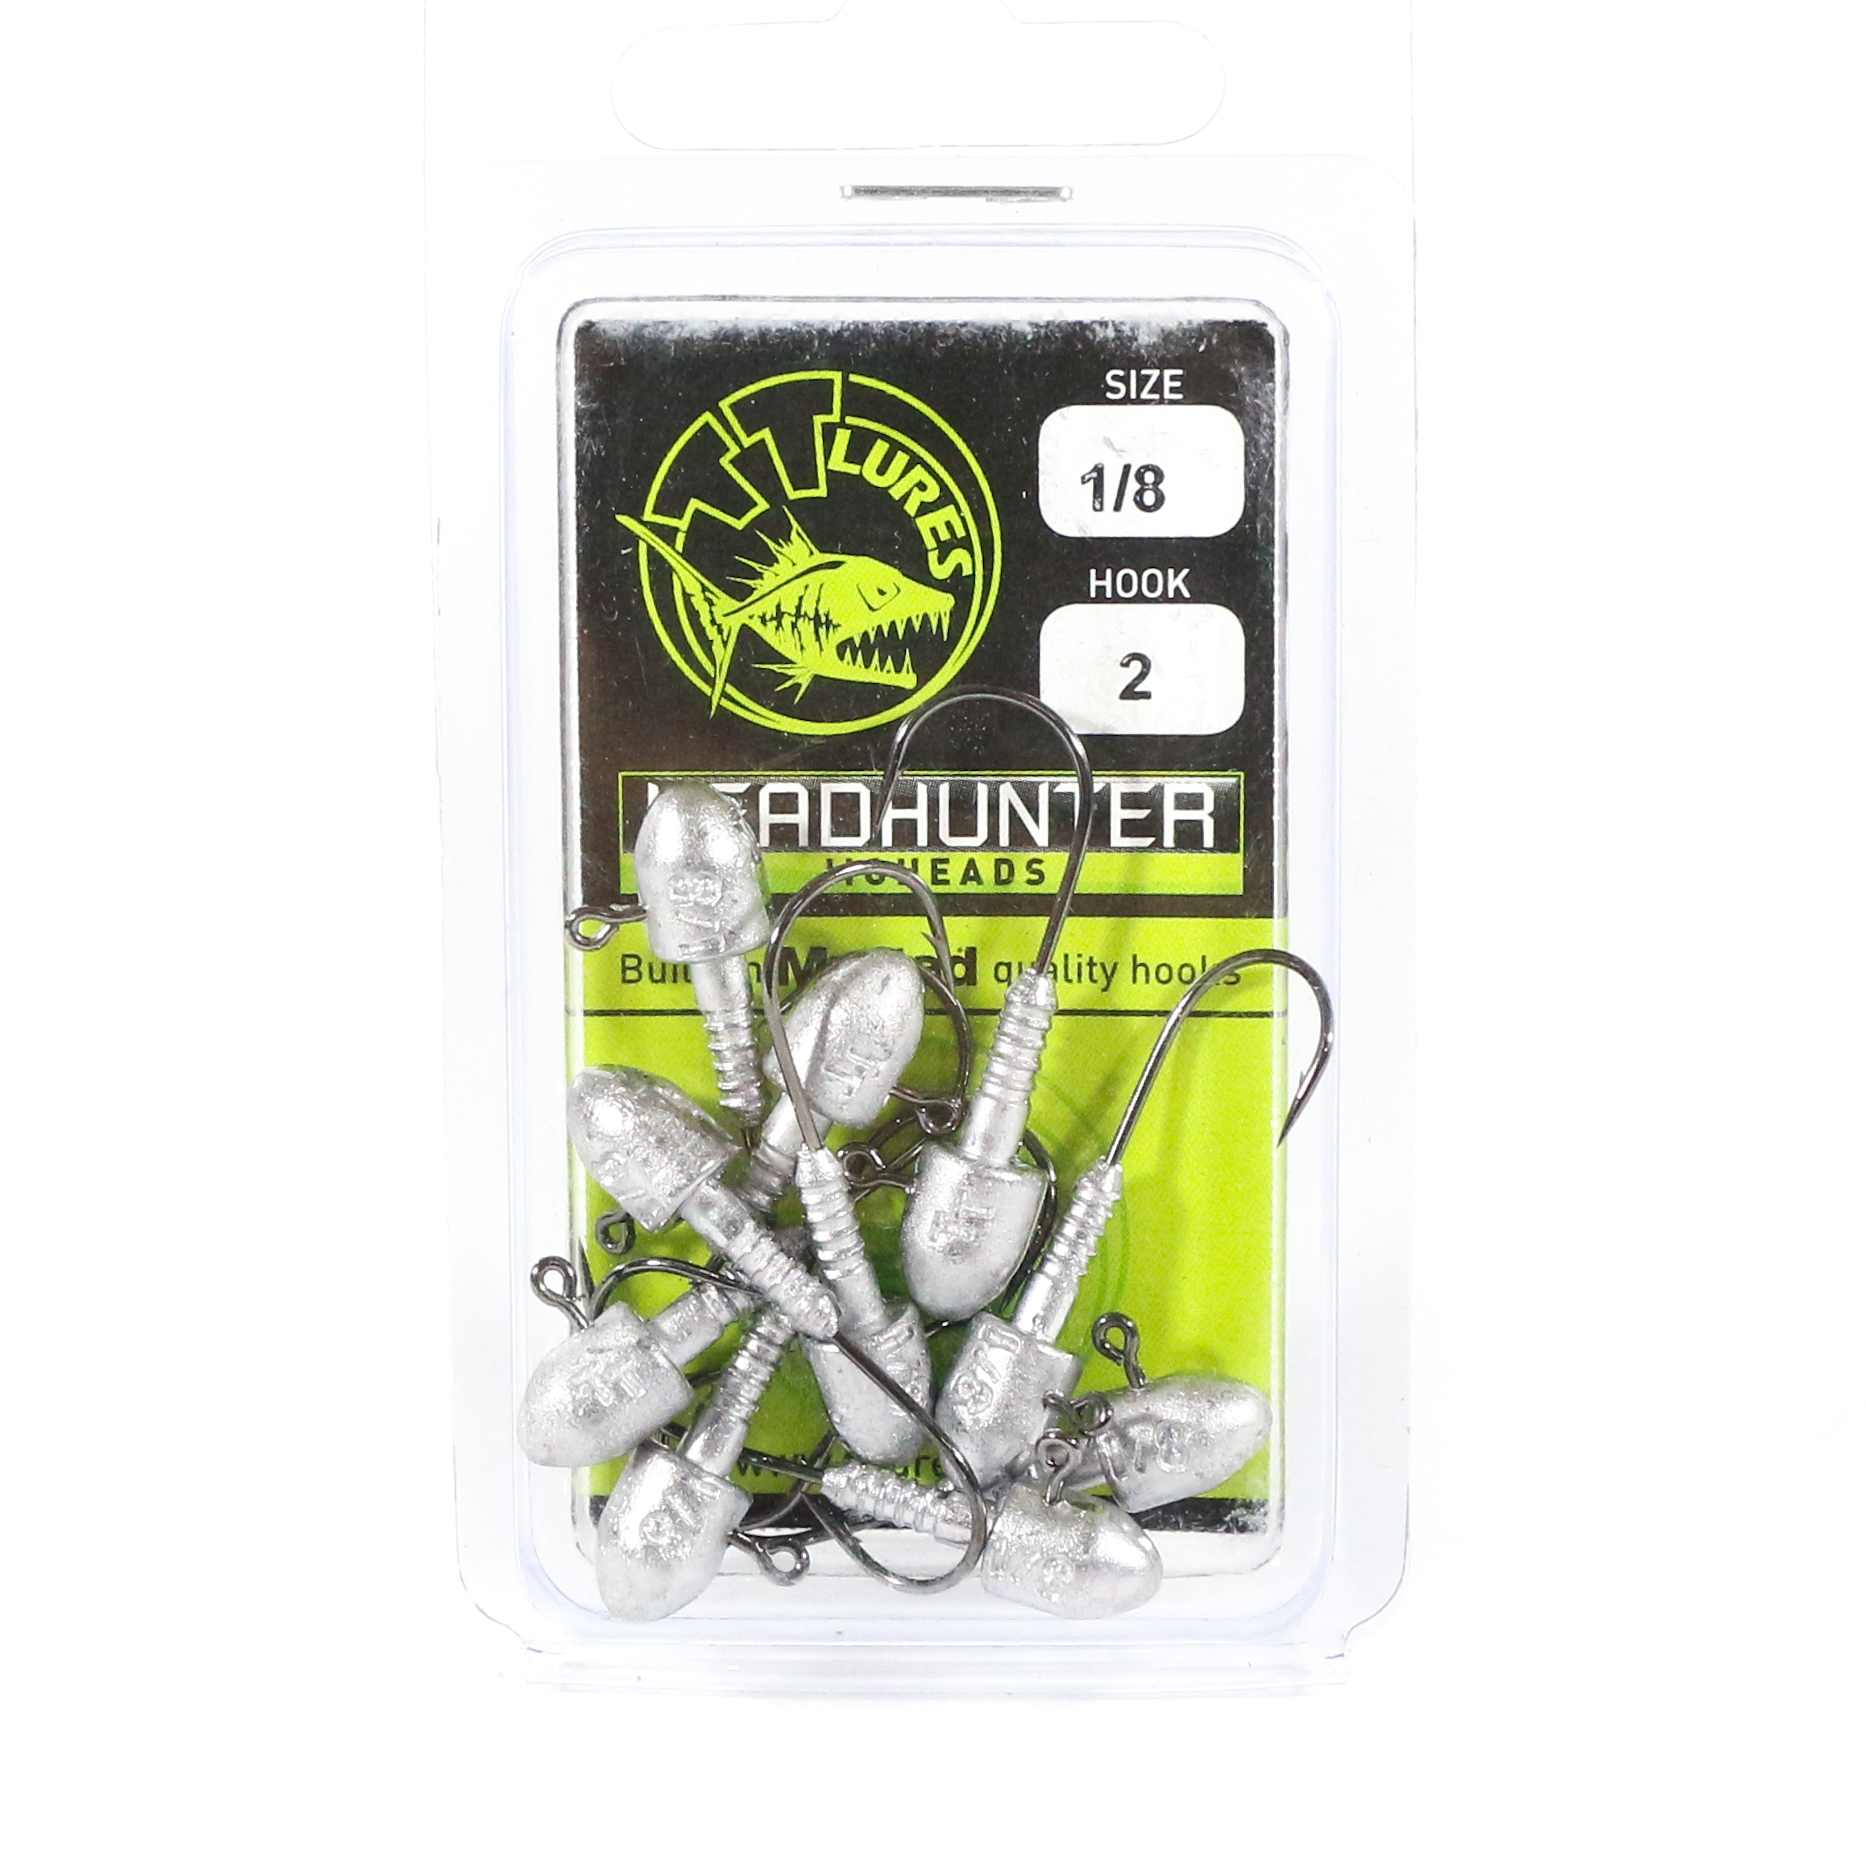 Tackle Tactics TT Head Hunter Jig Head 1/8 oz 2 10 per pack (1098)